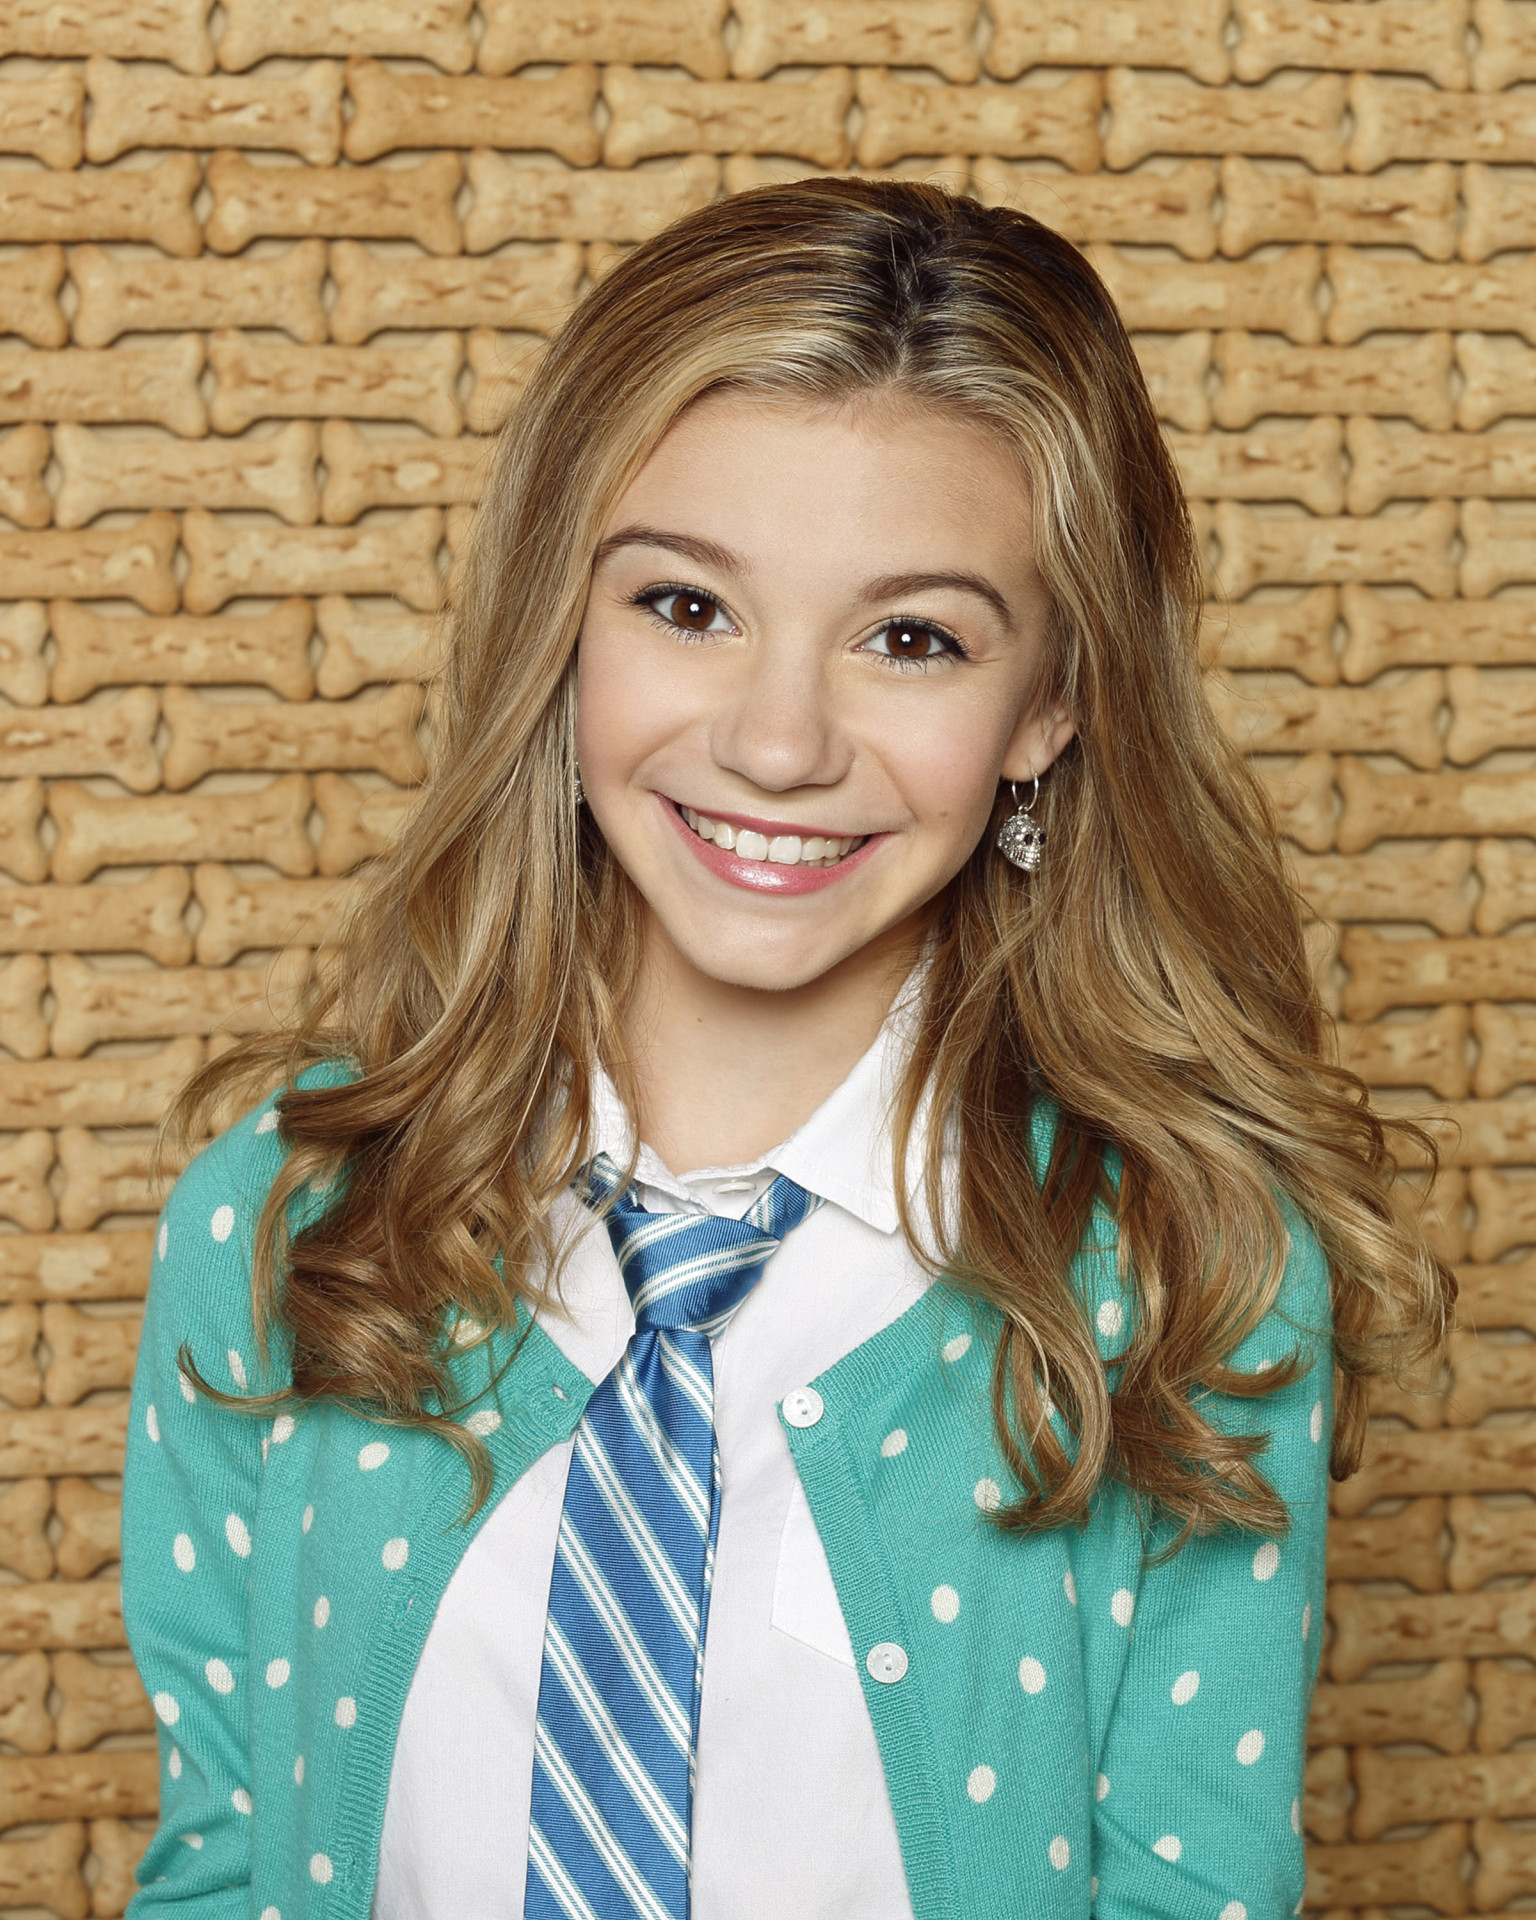 Actress G Hannelius - age: 22